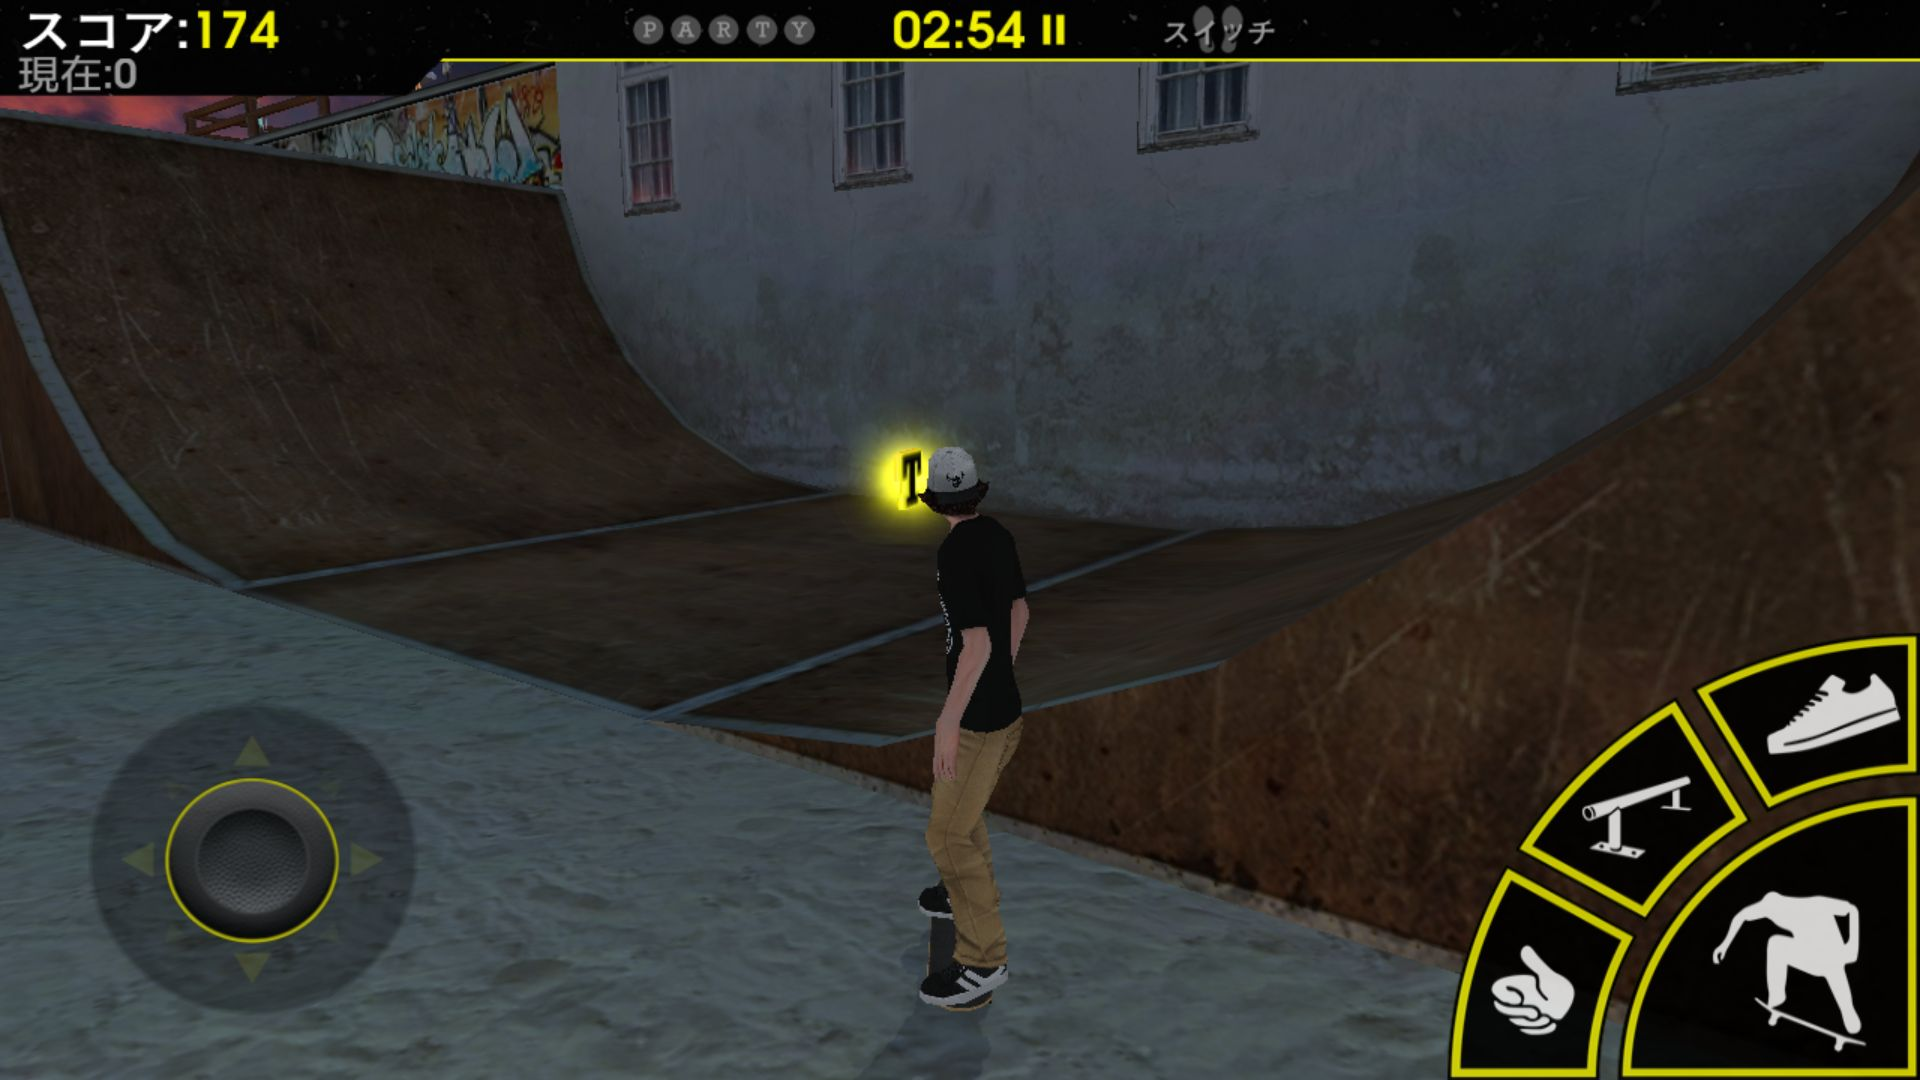 androidアプリ Skateboard Party 3 Lite Greg攻略スクリーンショット4